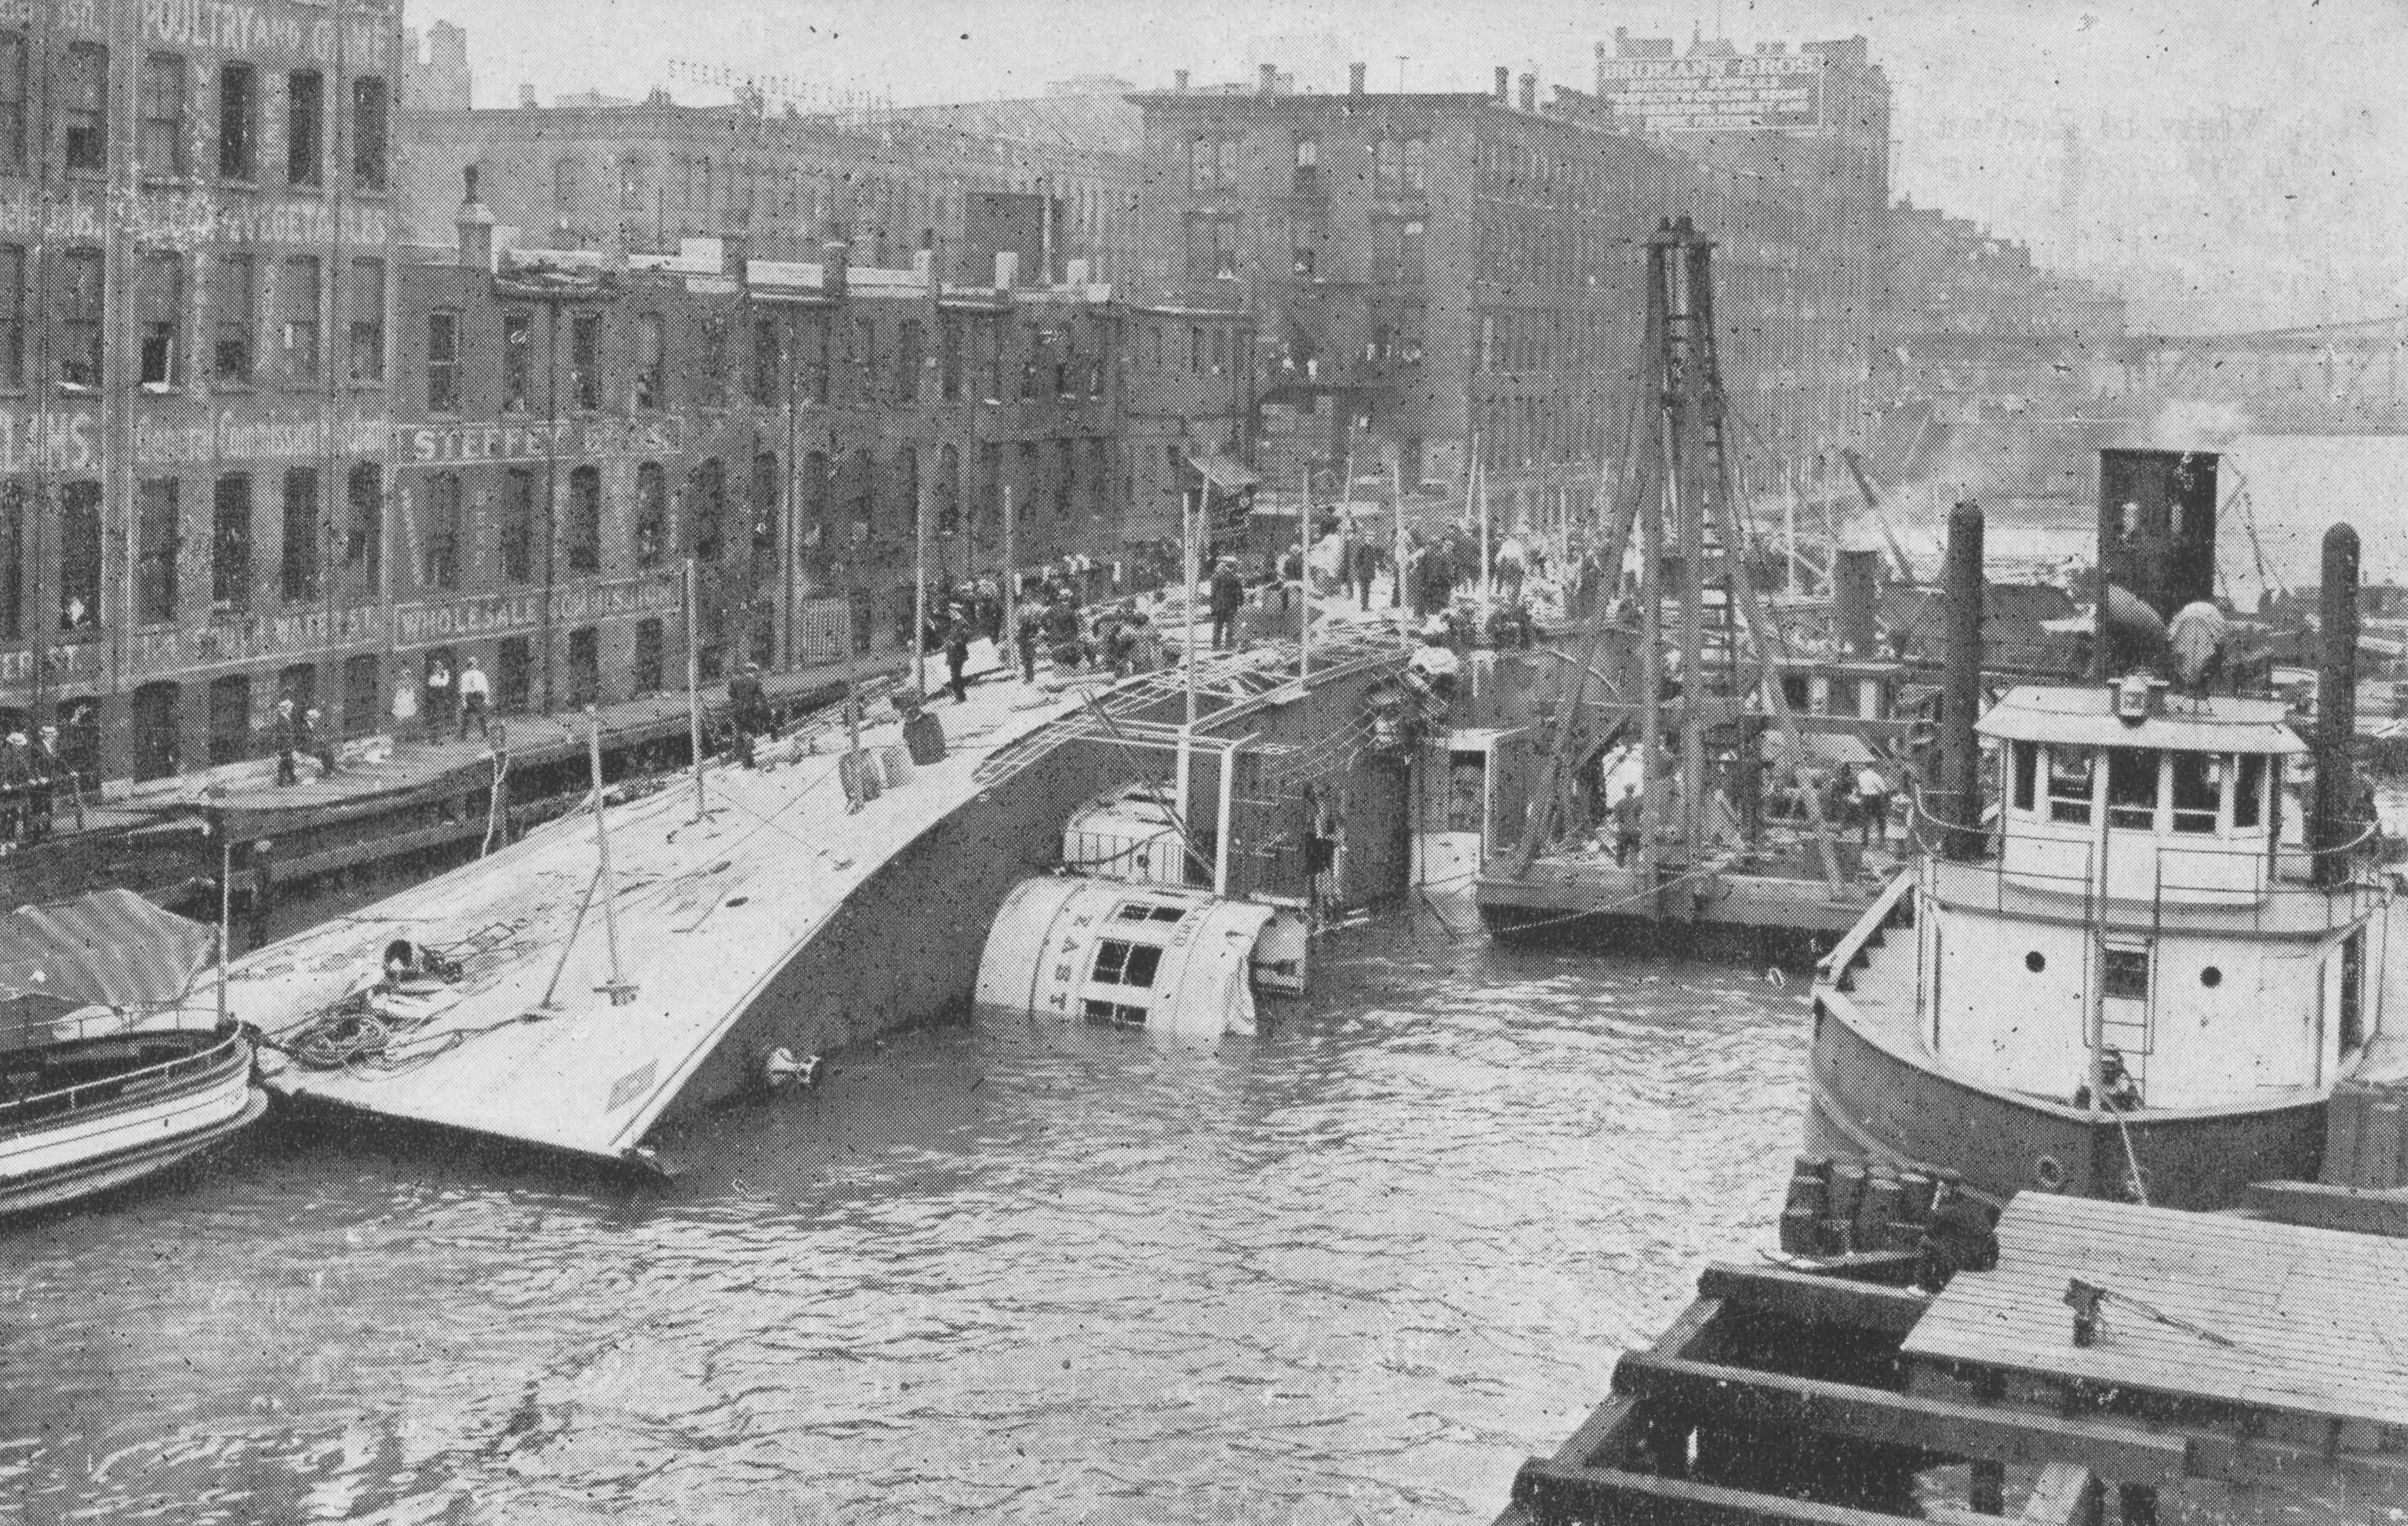 Picture of the Eastland resting on its side in the Chicago River